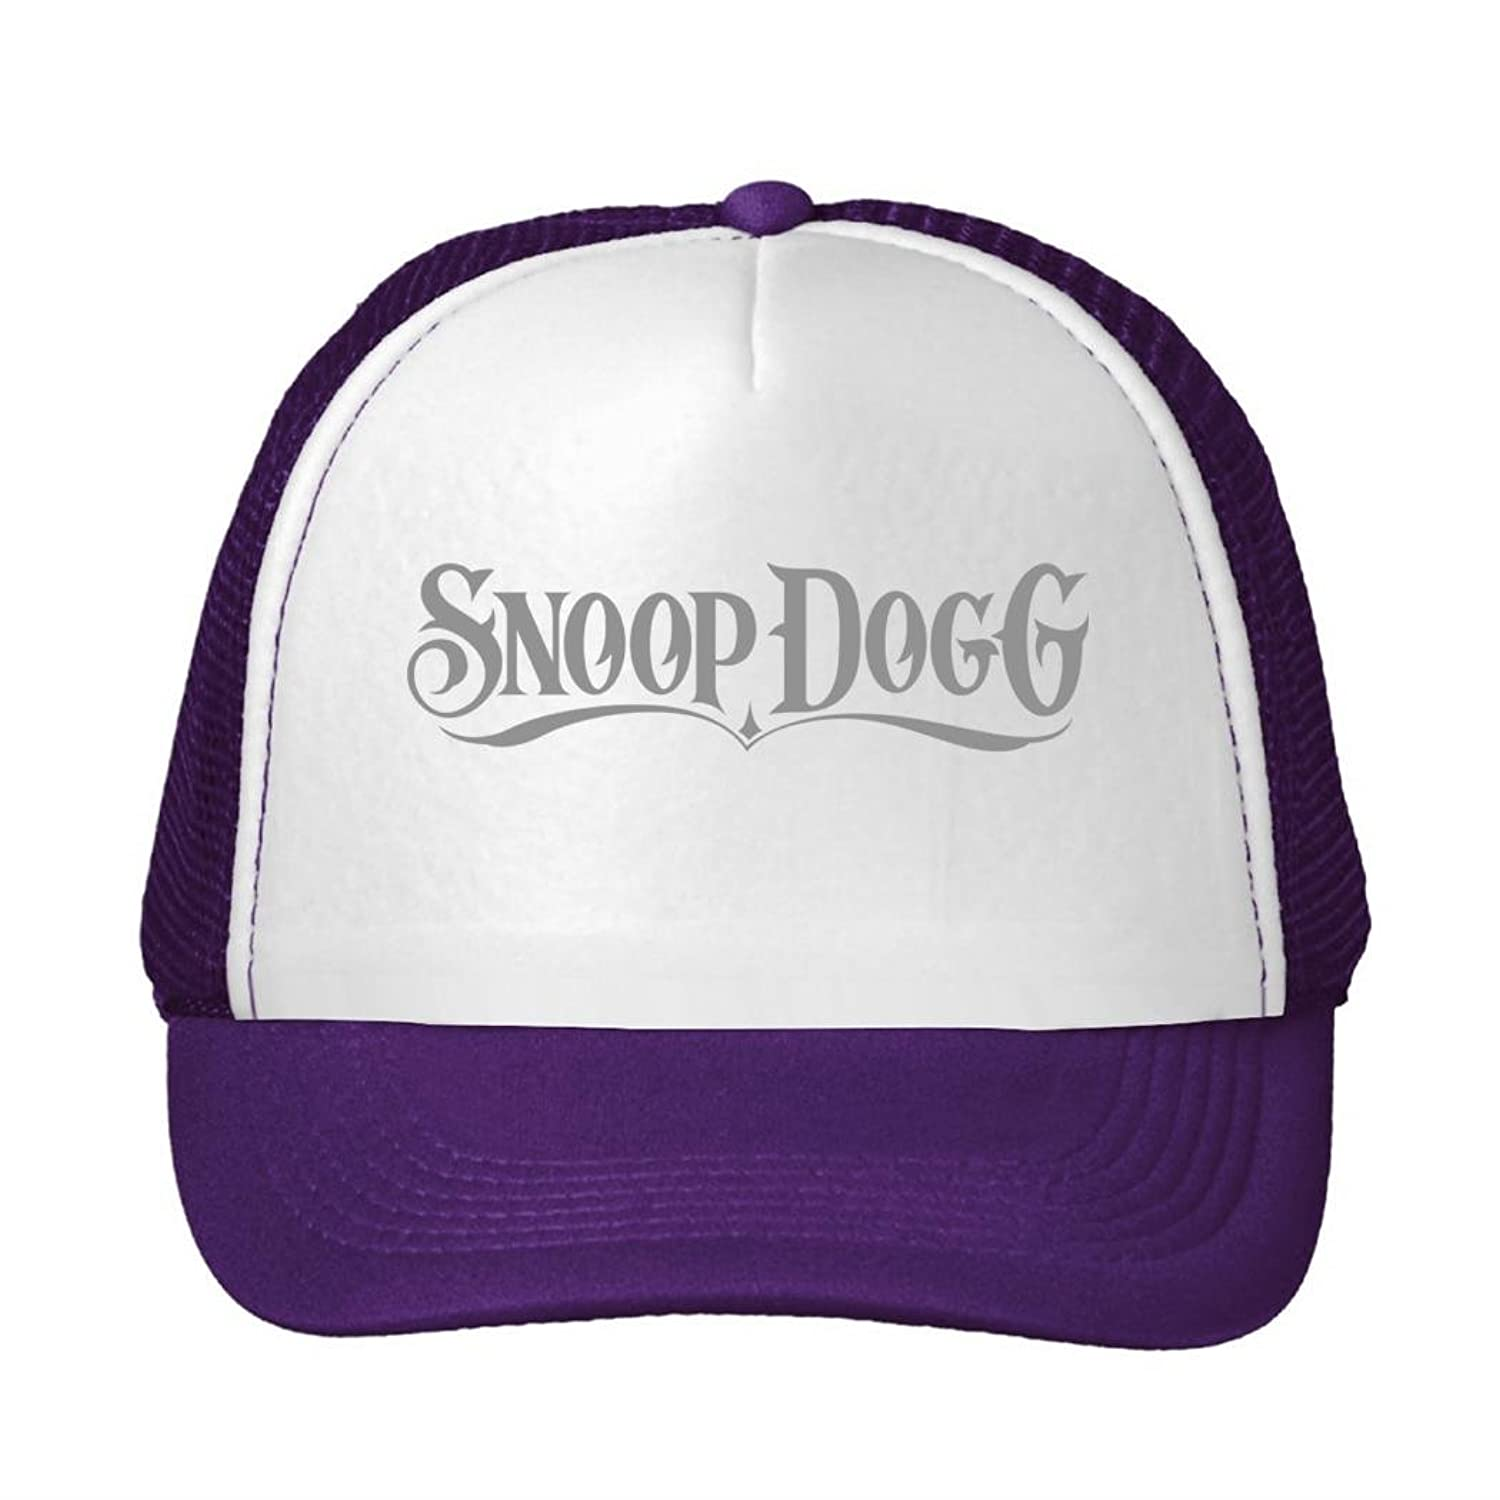 Nice Cotton Men Women Trucker Hat Snoop Dogg Tour Logo 2016 Adjustable Cute Sun Cap